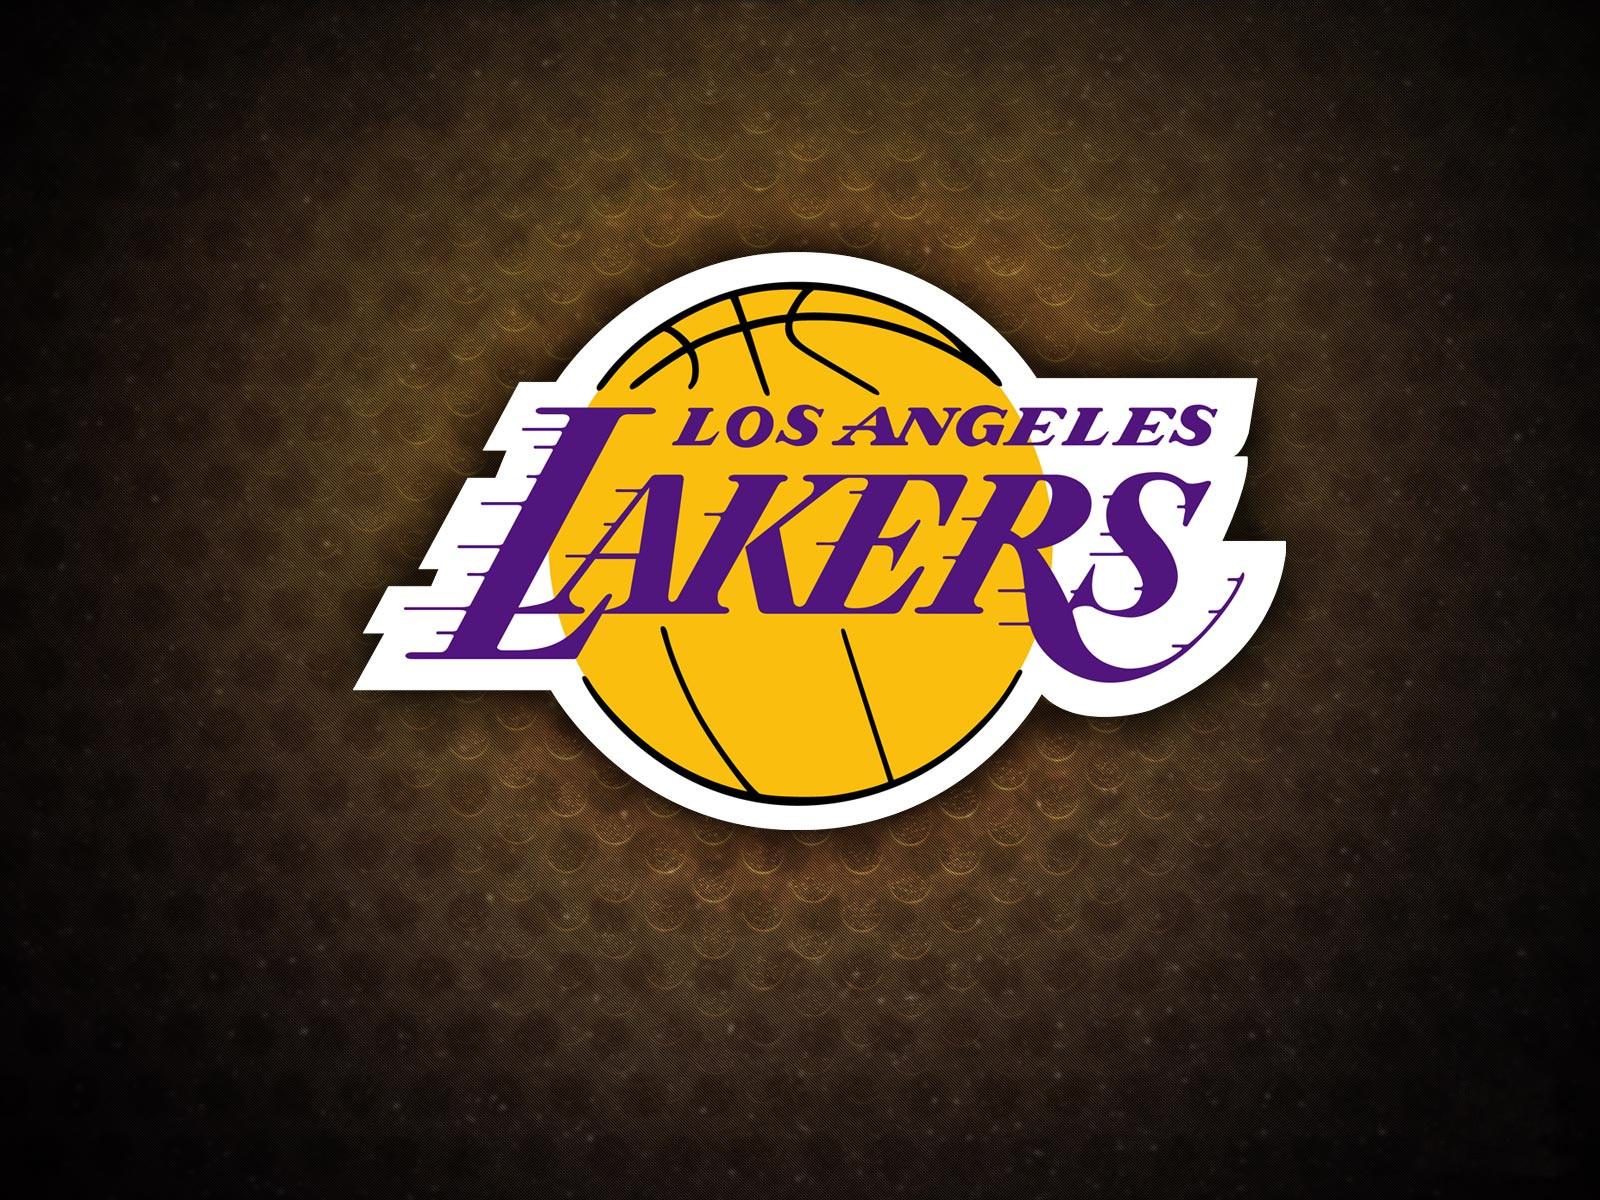 http://4.bp.blogspot.com/-RFSw42eYmFw/UOqyIfe-tyI/AAAAAAAAcuk/agnwYa9nDrw/s1600/La+Lakers+Basketball+Club+Logo+Wallpaper+2013+03.jpg